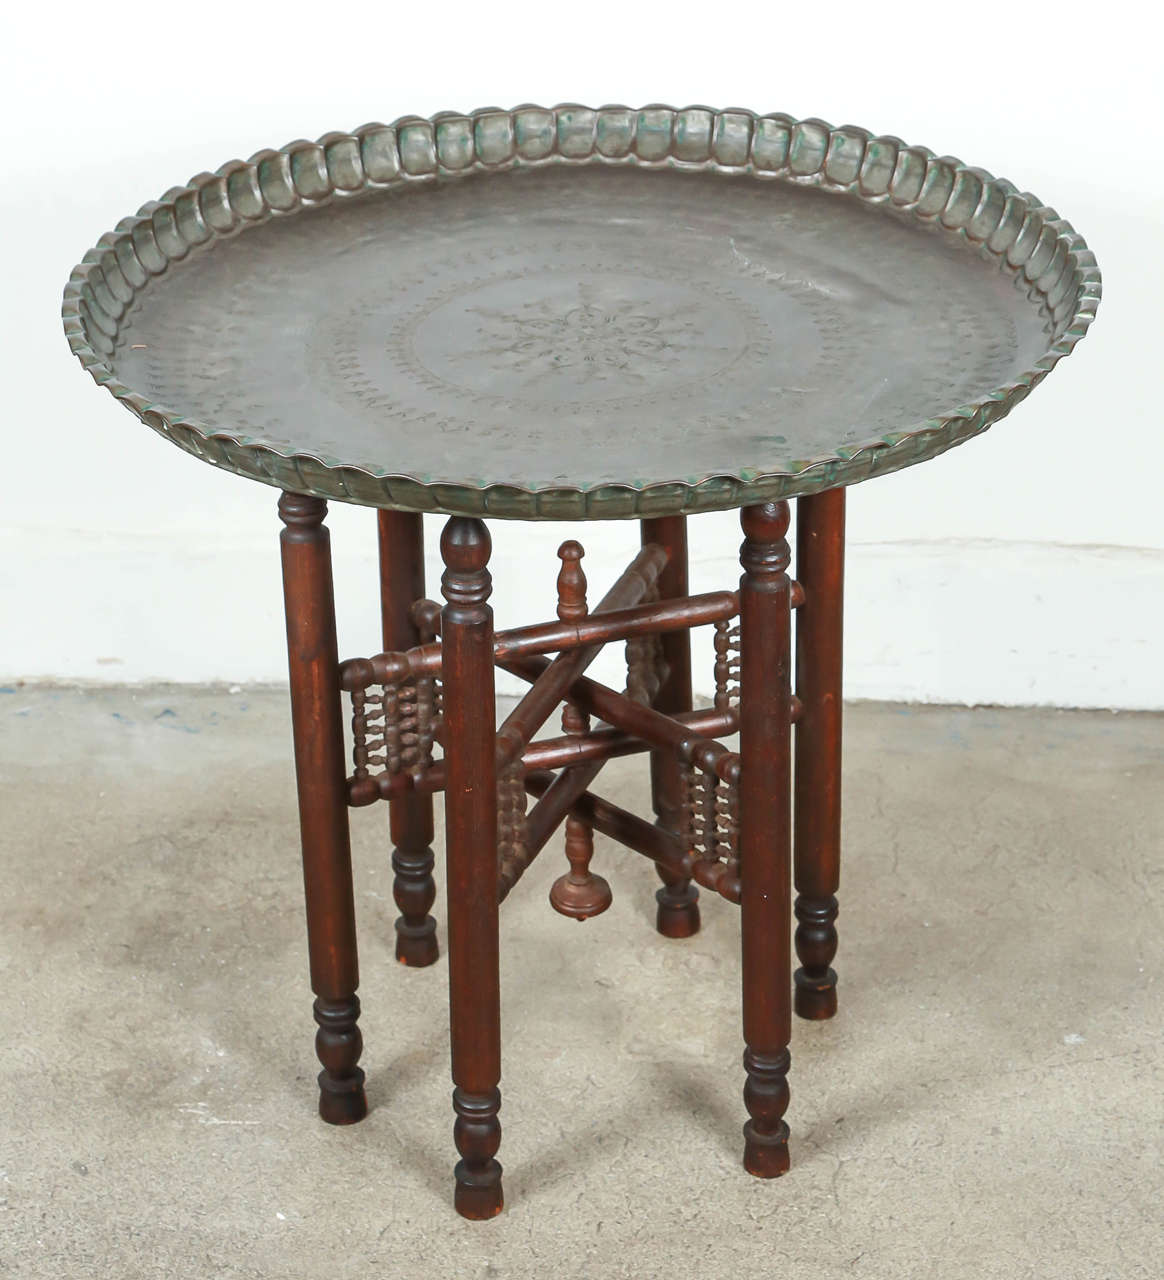 Exceptionnel Persian Mameluke Tinned Copper Tray Table. Very Nice Unusual Persian Dark  Bronzed Color Tray On